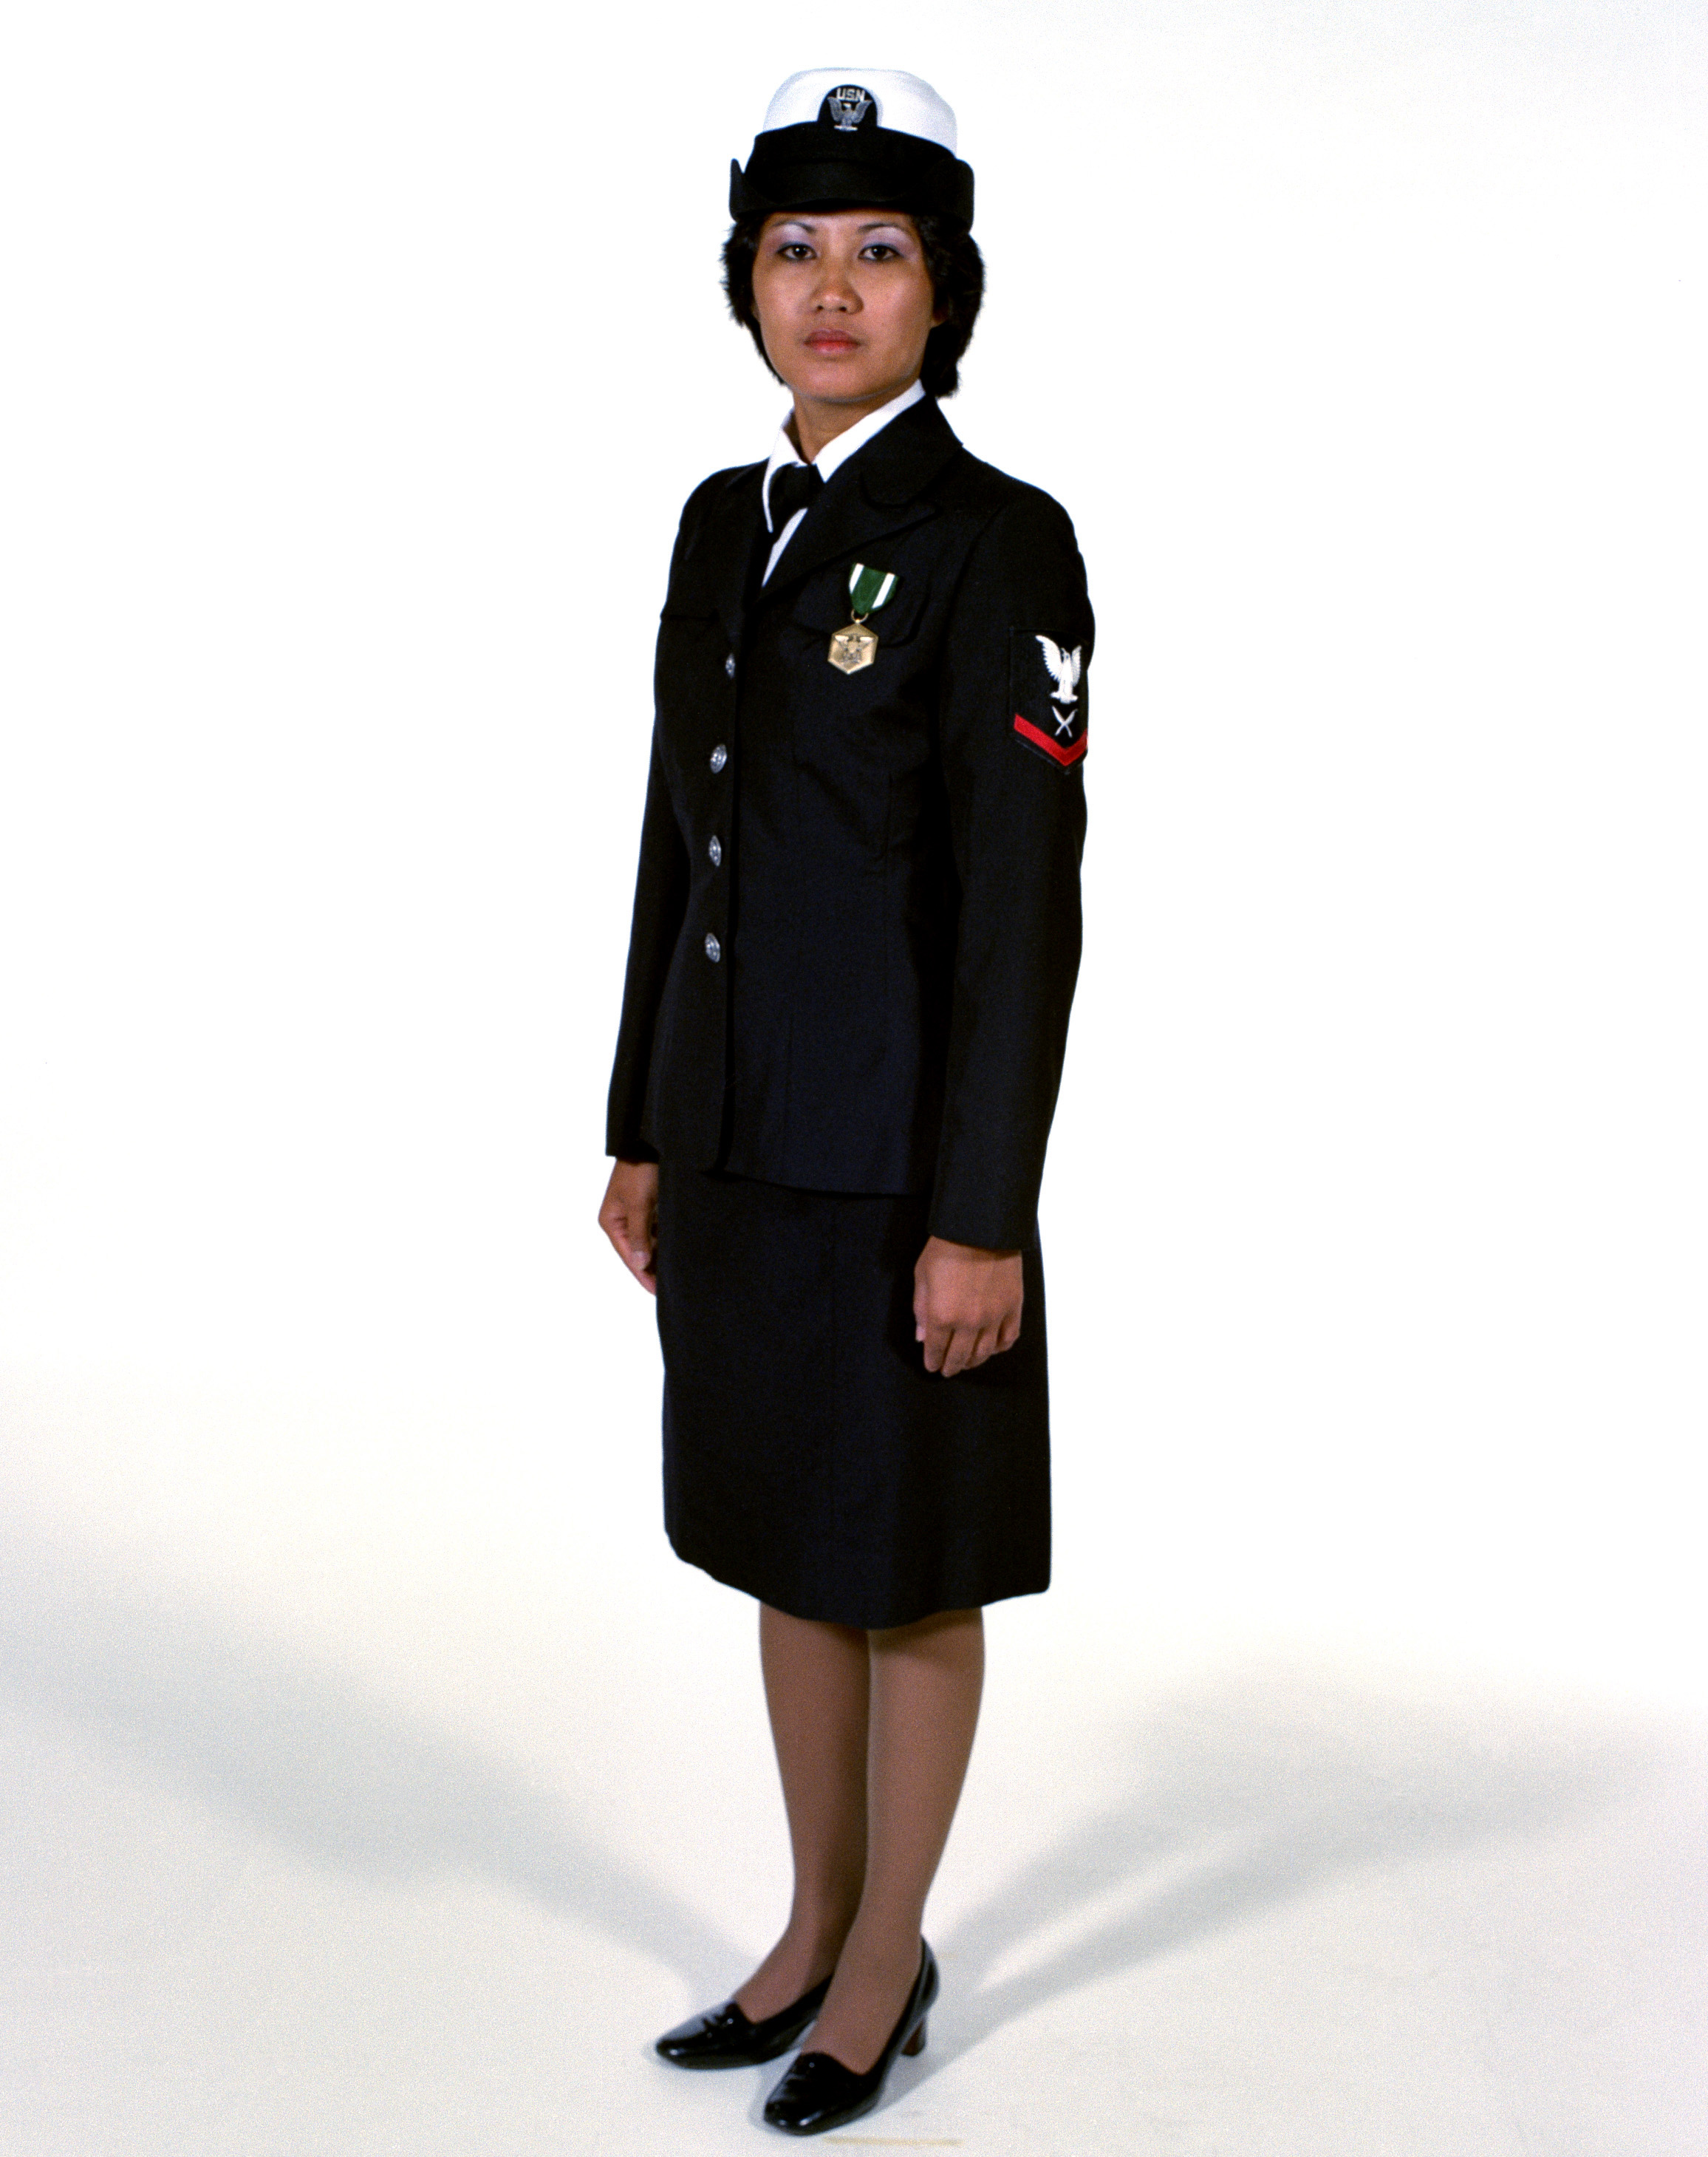 book of navy womens dress uniform in canada by isabella